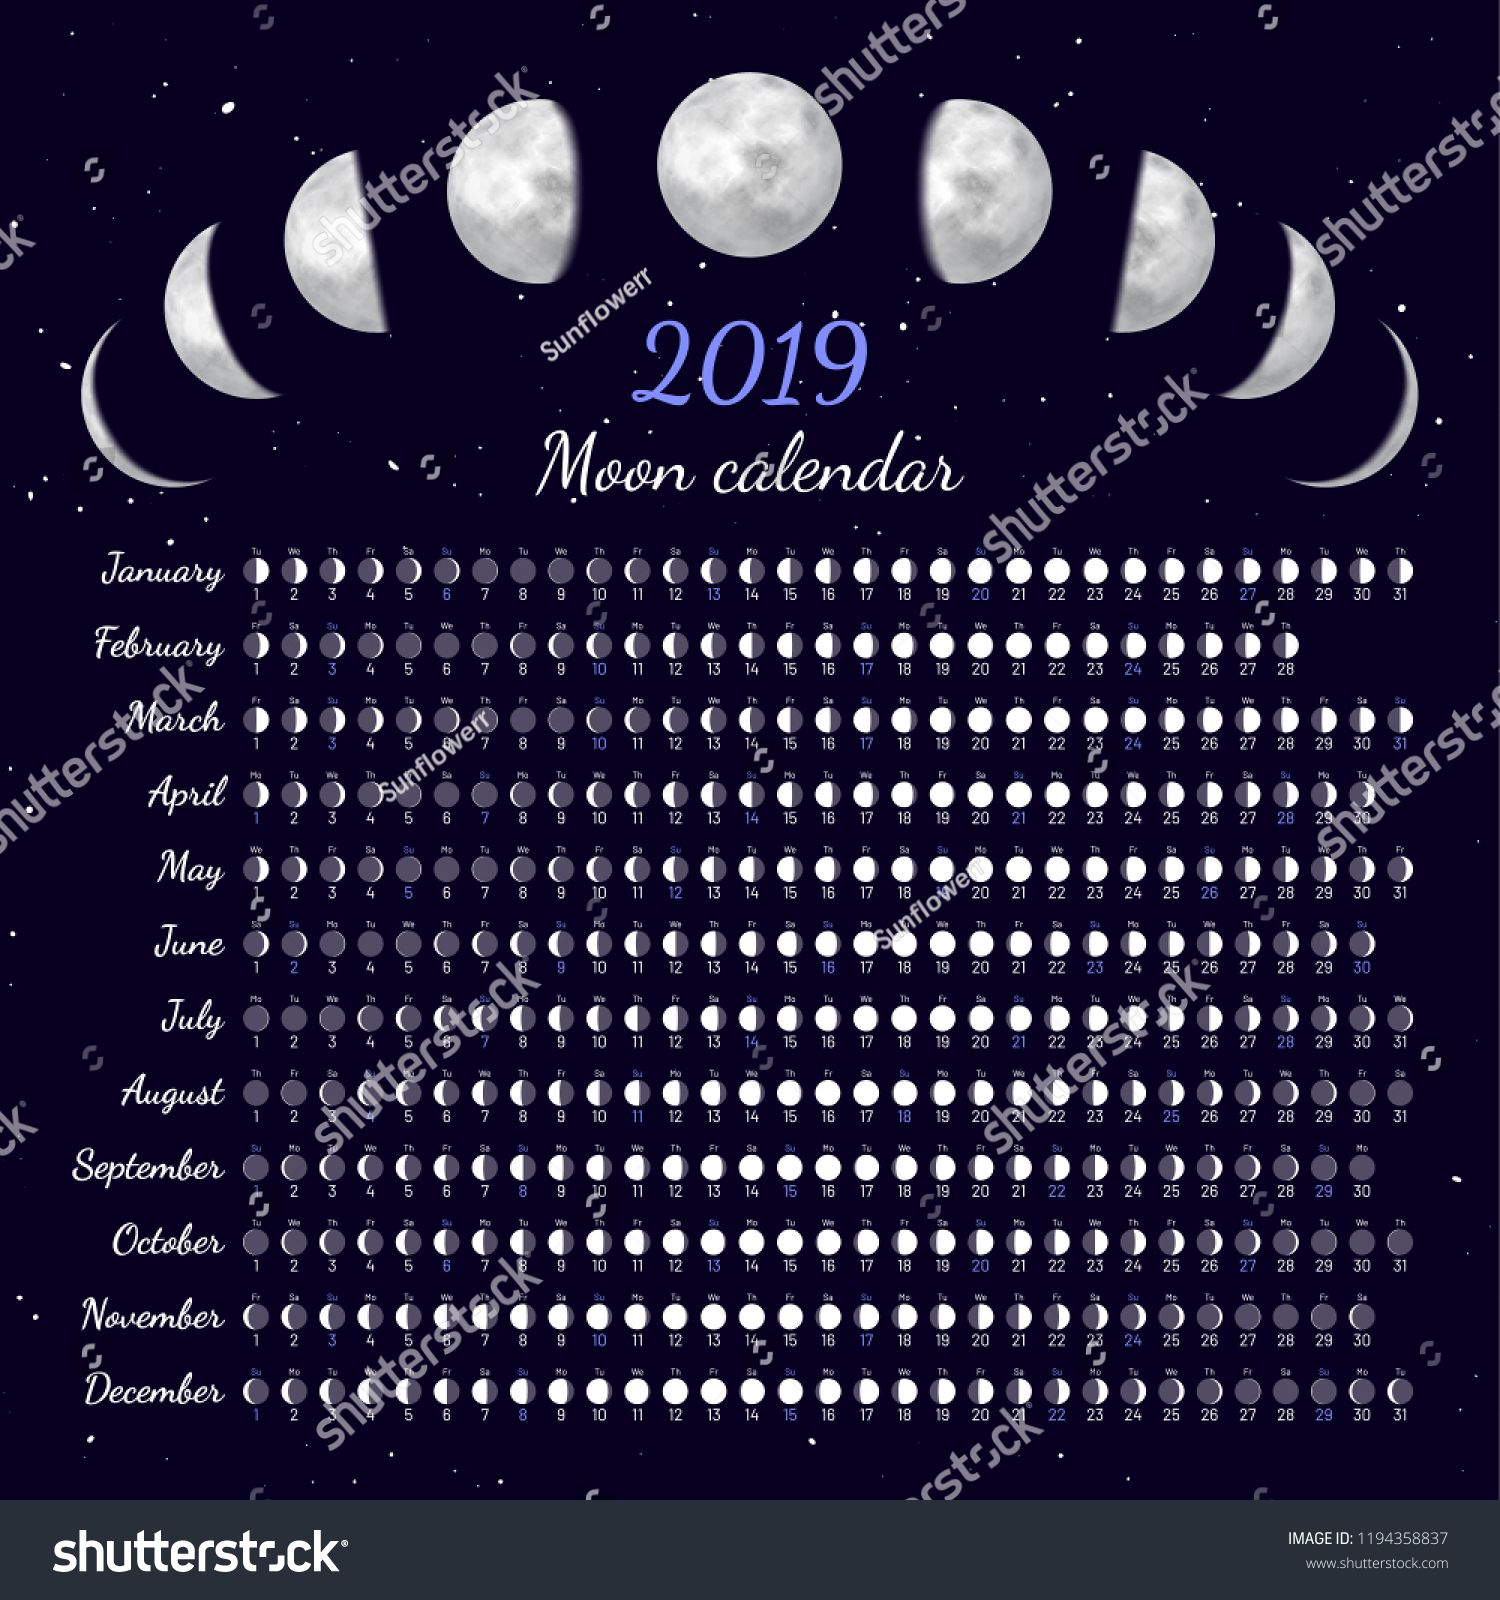 Moon Phases Calendar Dates For Full New And Every Phase In Between Cycles Of The Moon Vector Illustration Dai Moon Phase Calendar Lunar Cycle Moon Calendar